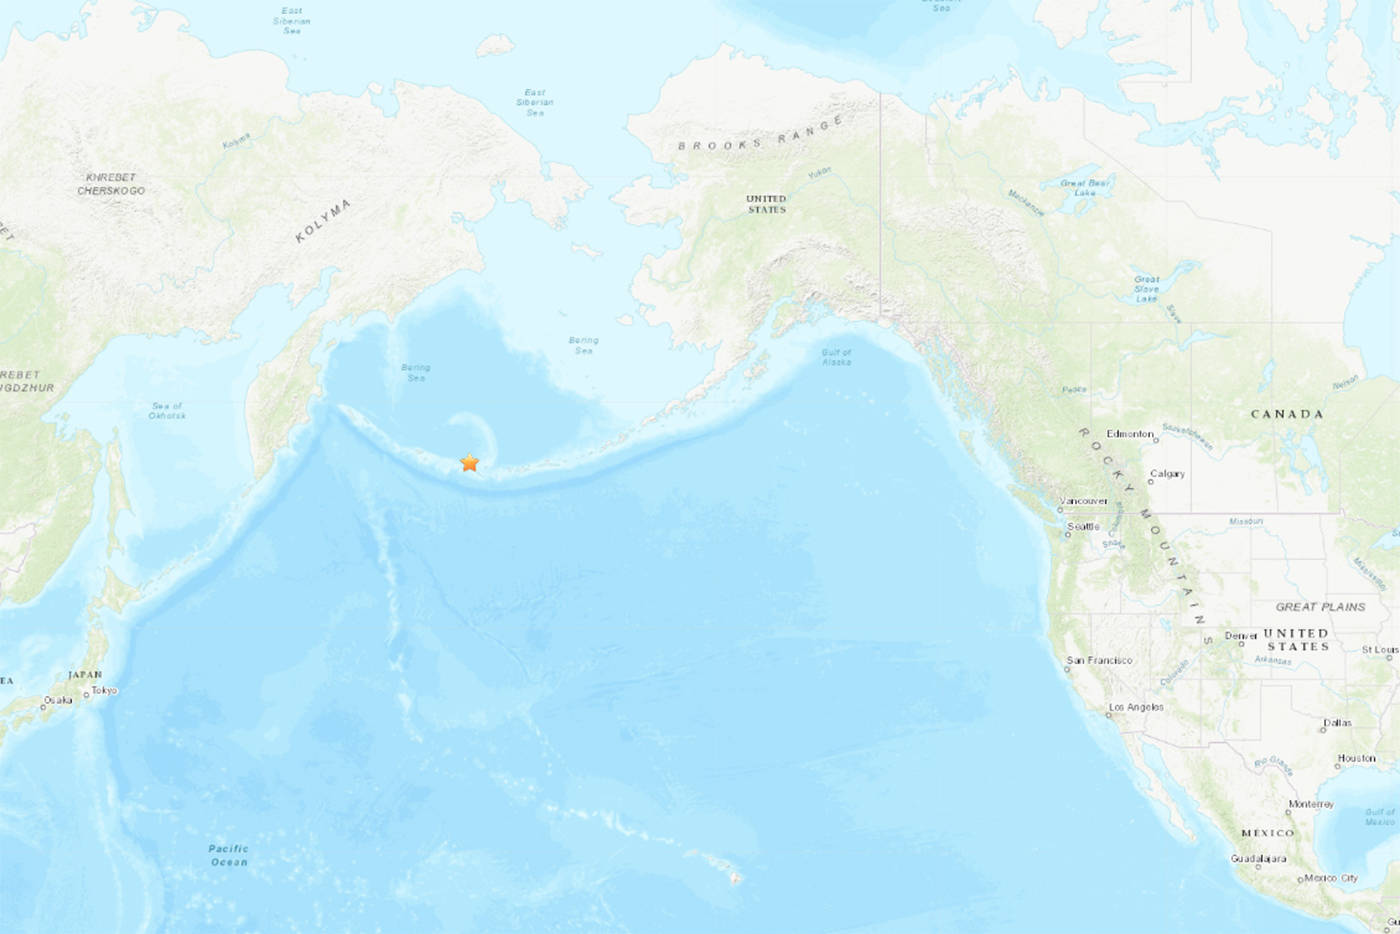 The strong 6.5 magnitude earthquake occurred in the Rat Islands of the western Aleutians at 1:35 p.m. (earthquake.usgs.gov)